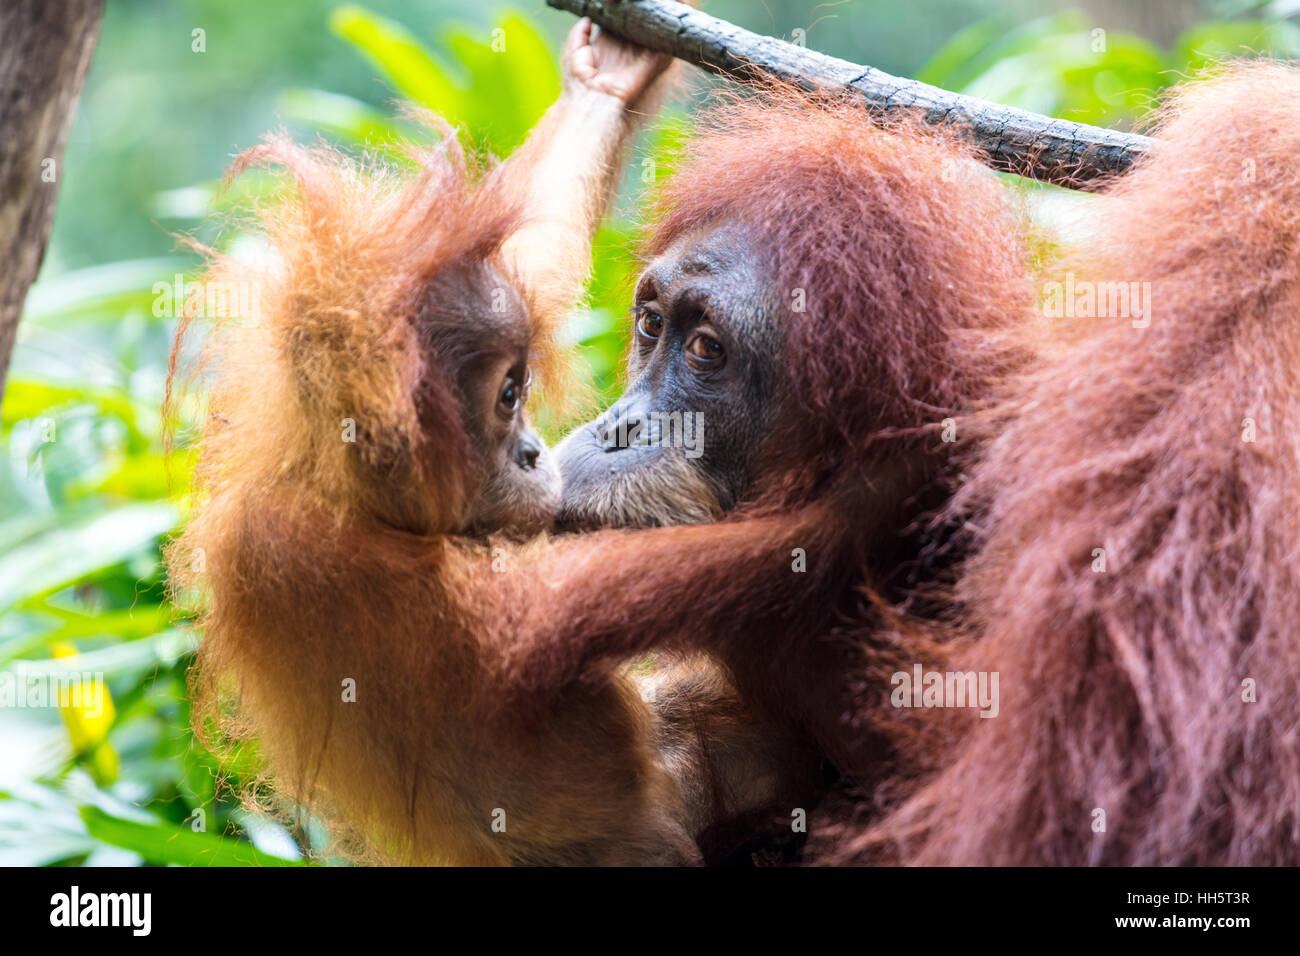 Mother with baby orangutan - Stock Image